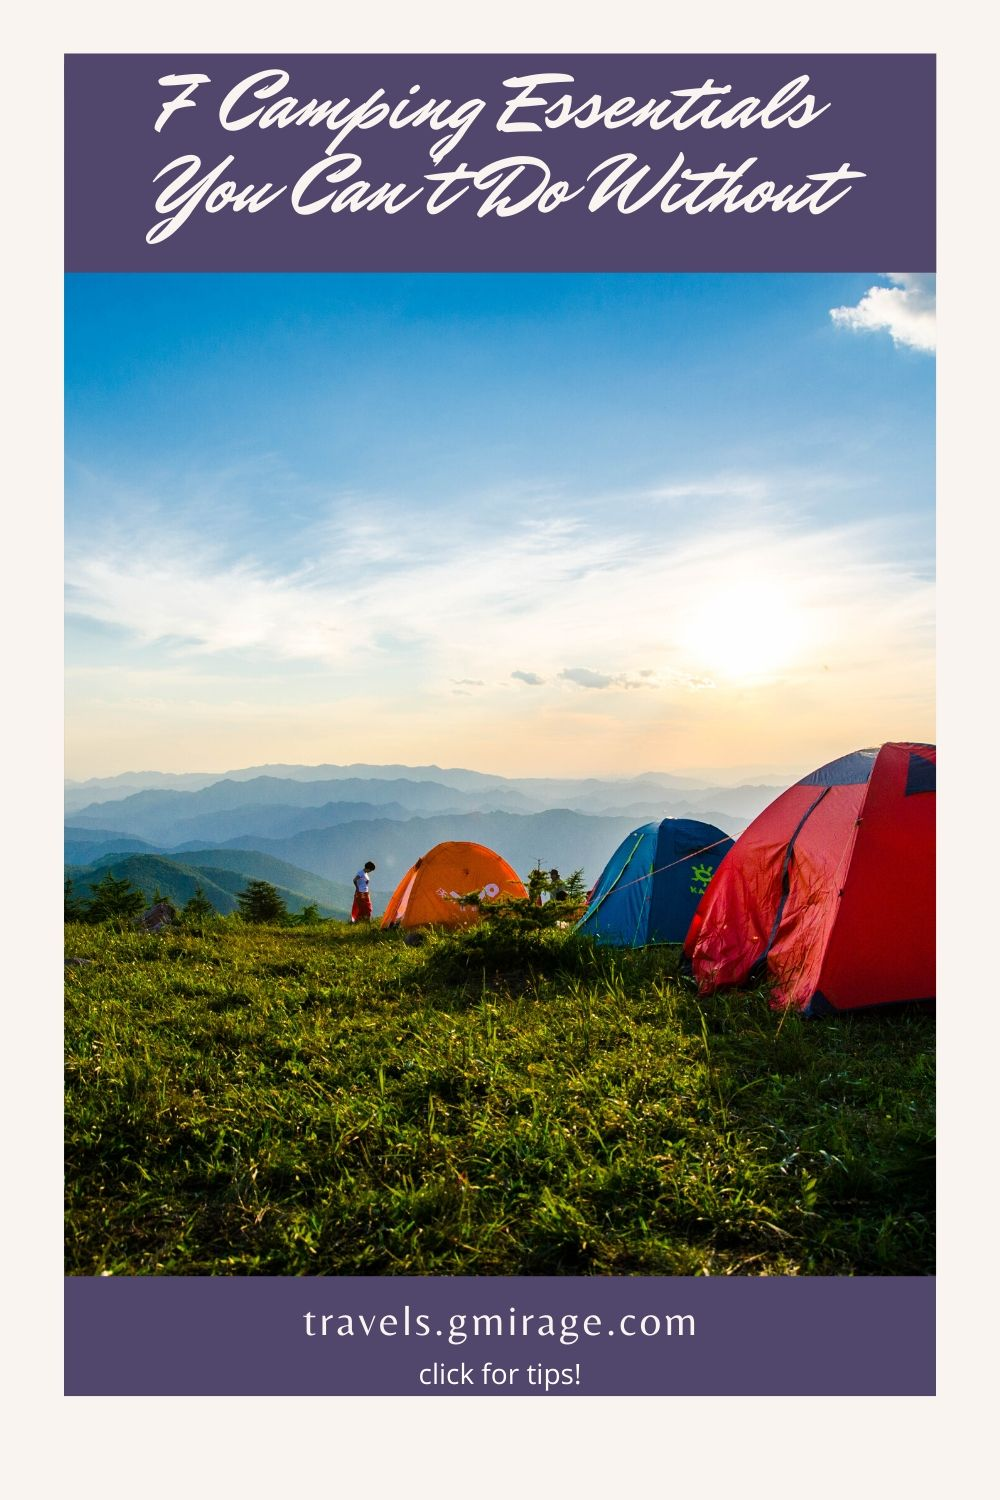 Camping Essentials You Can't Do Without